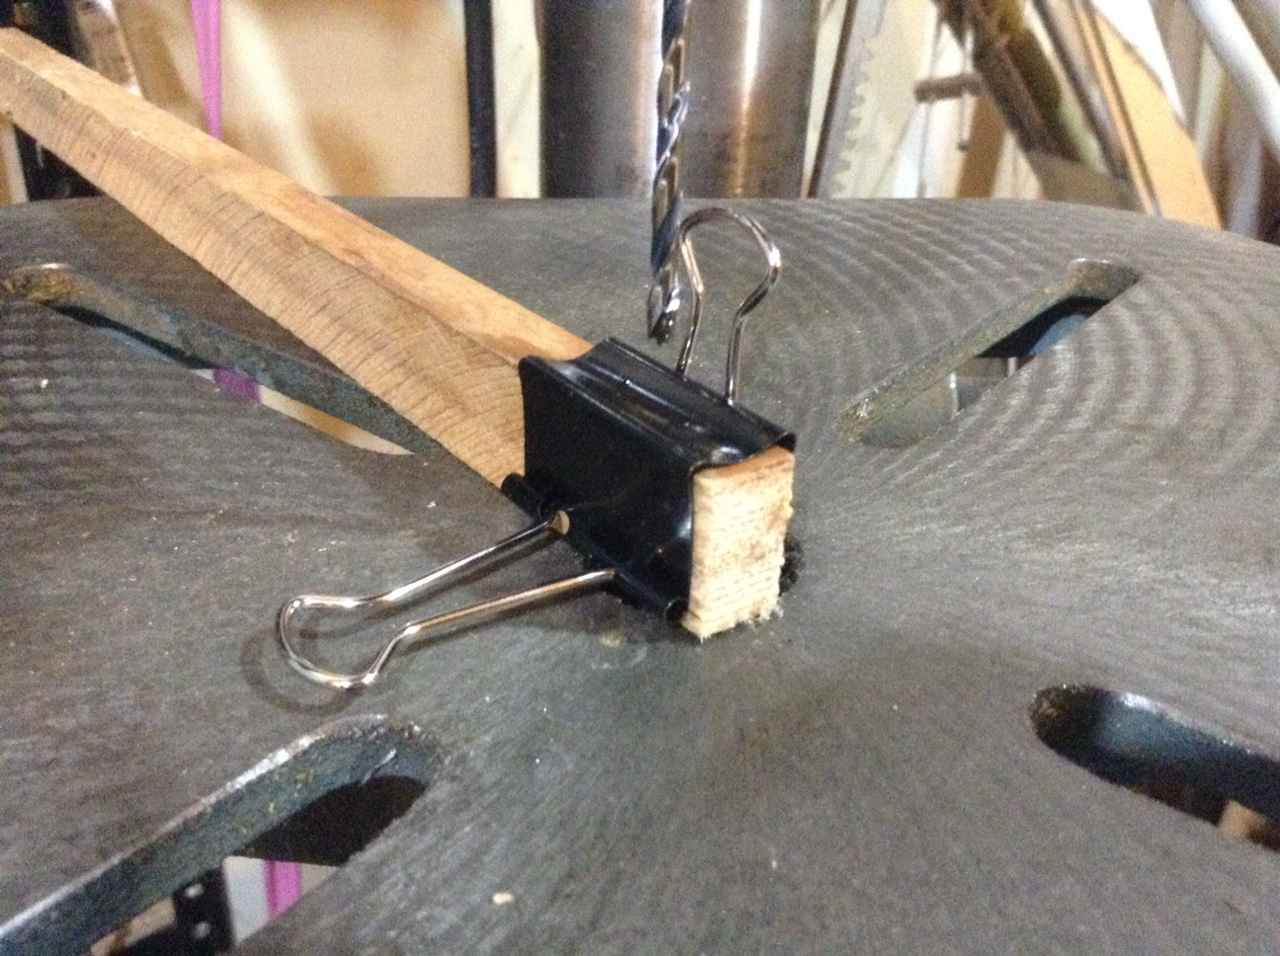 Binder clip on wood piece for drilling